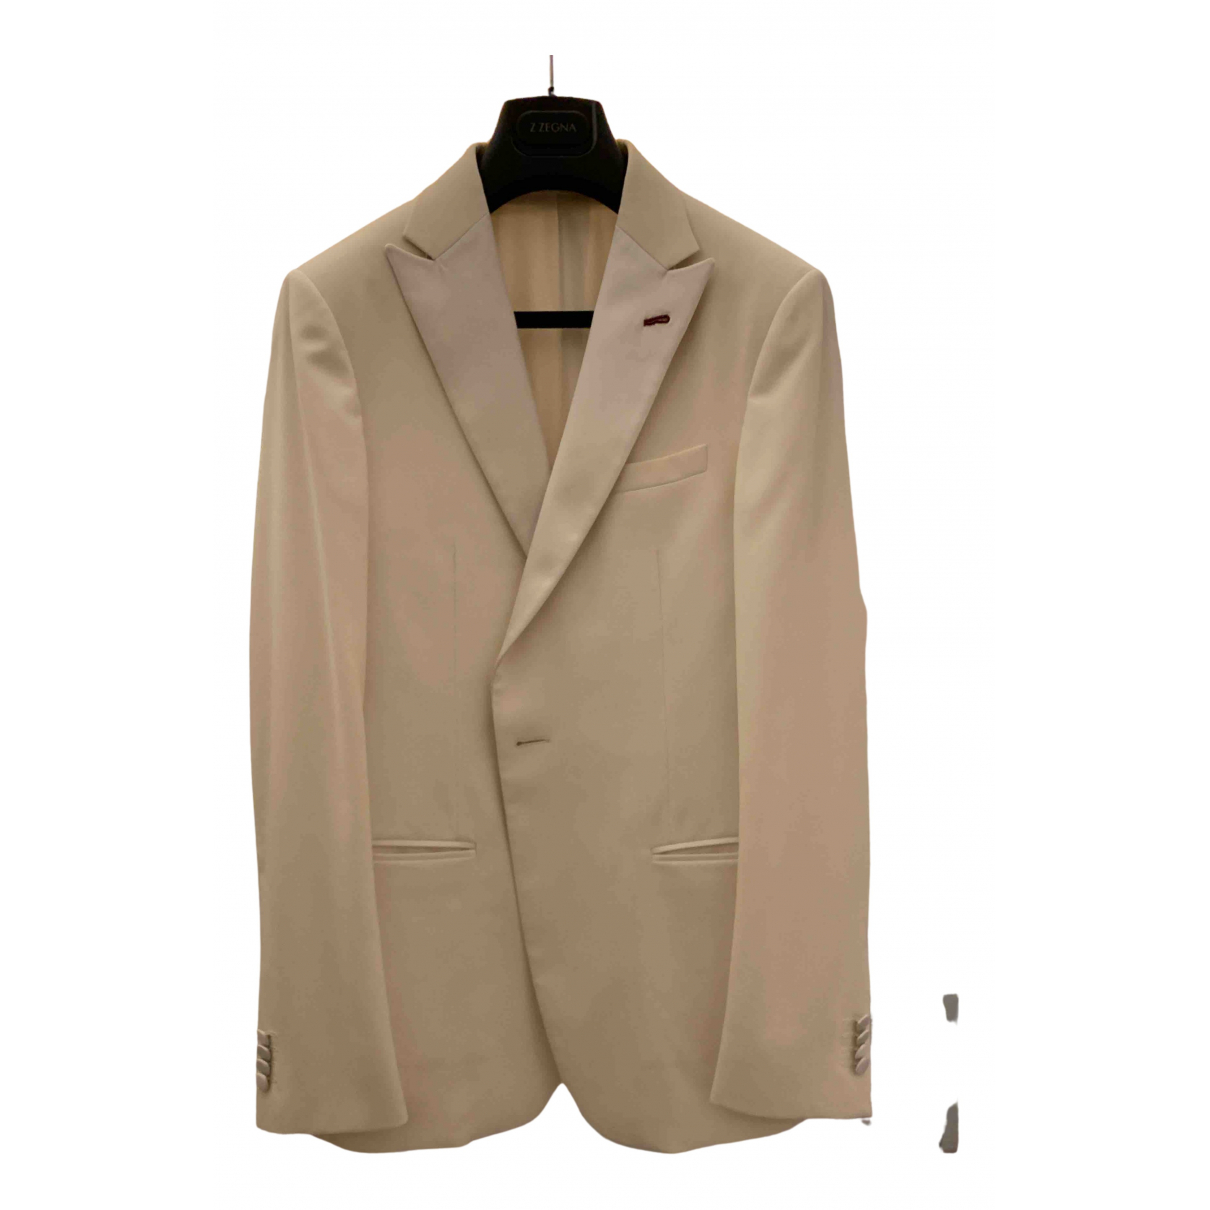 Z Zegna N White Wool Suits for Men 48 IT